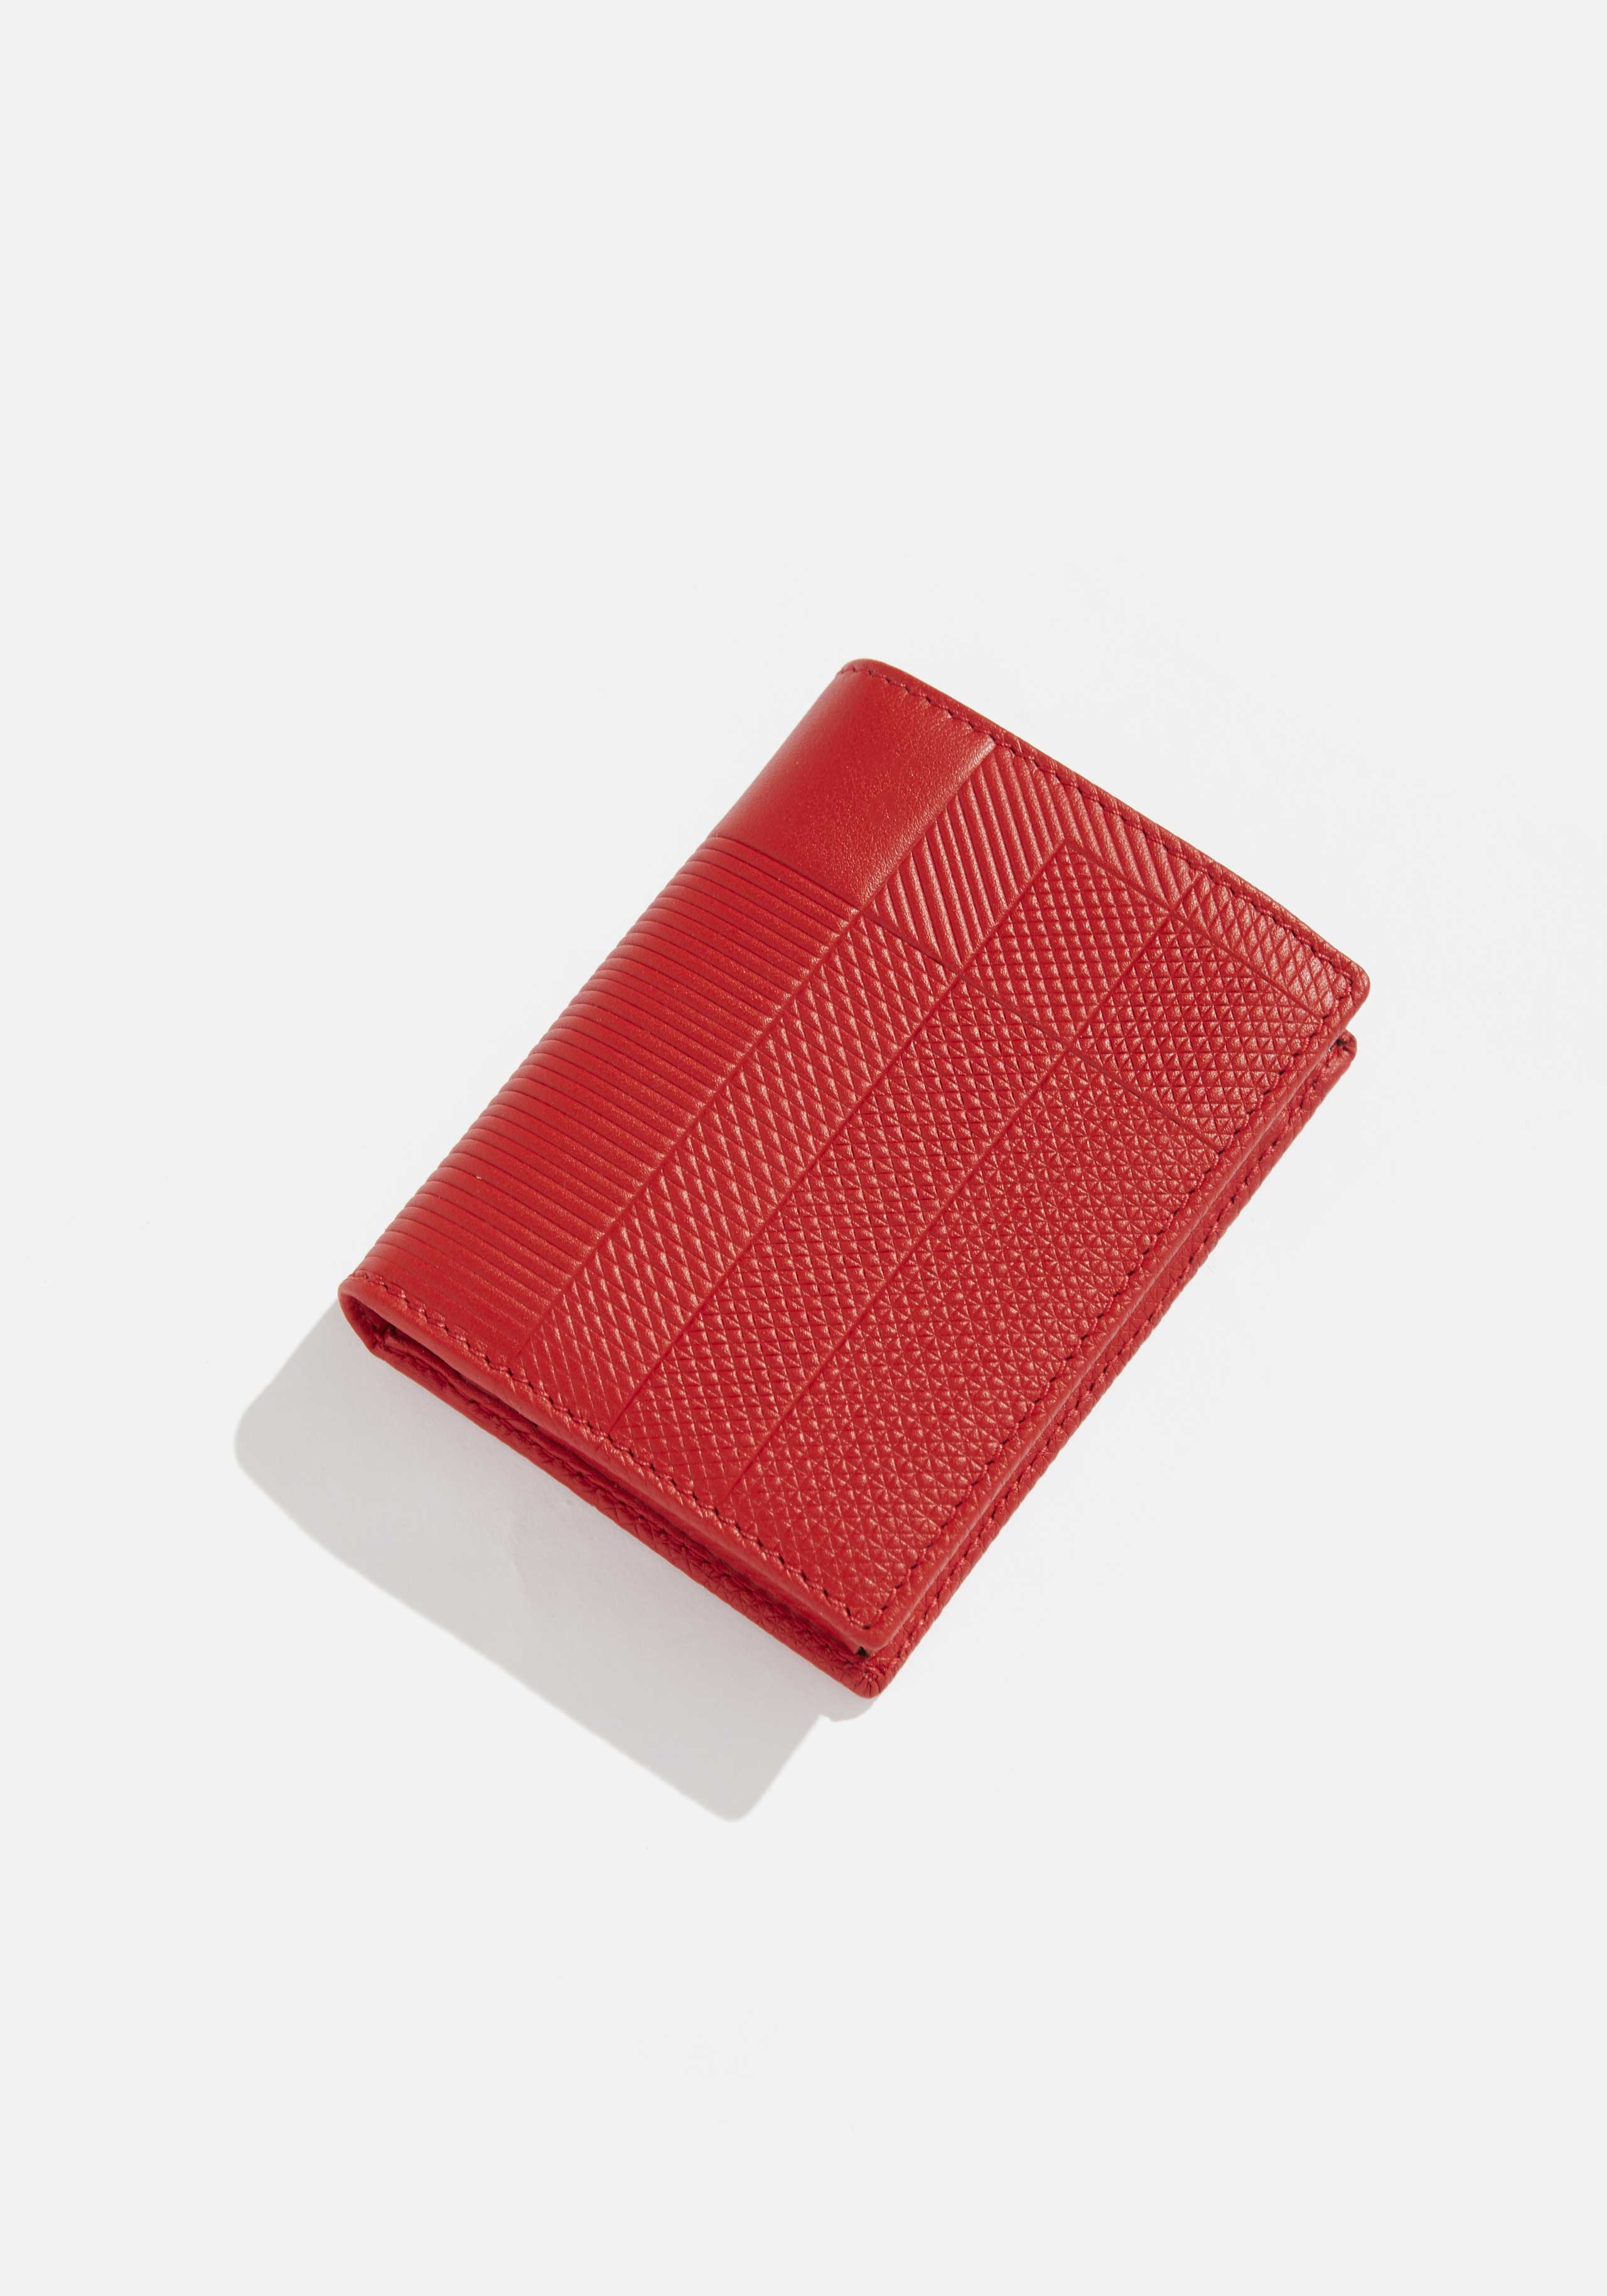 comme des garcons intersection card wallet 4